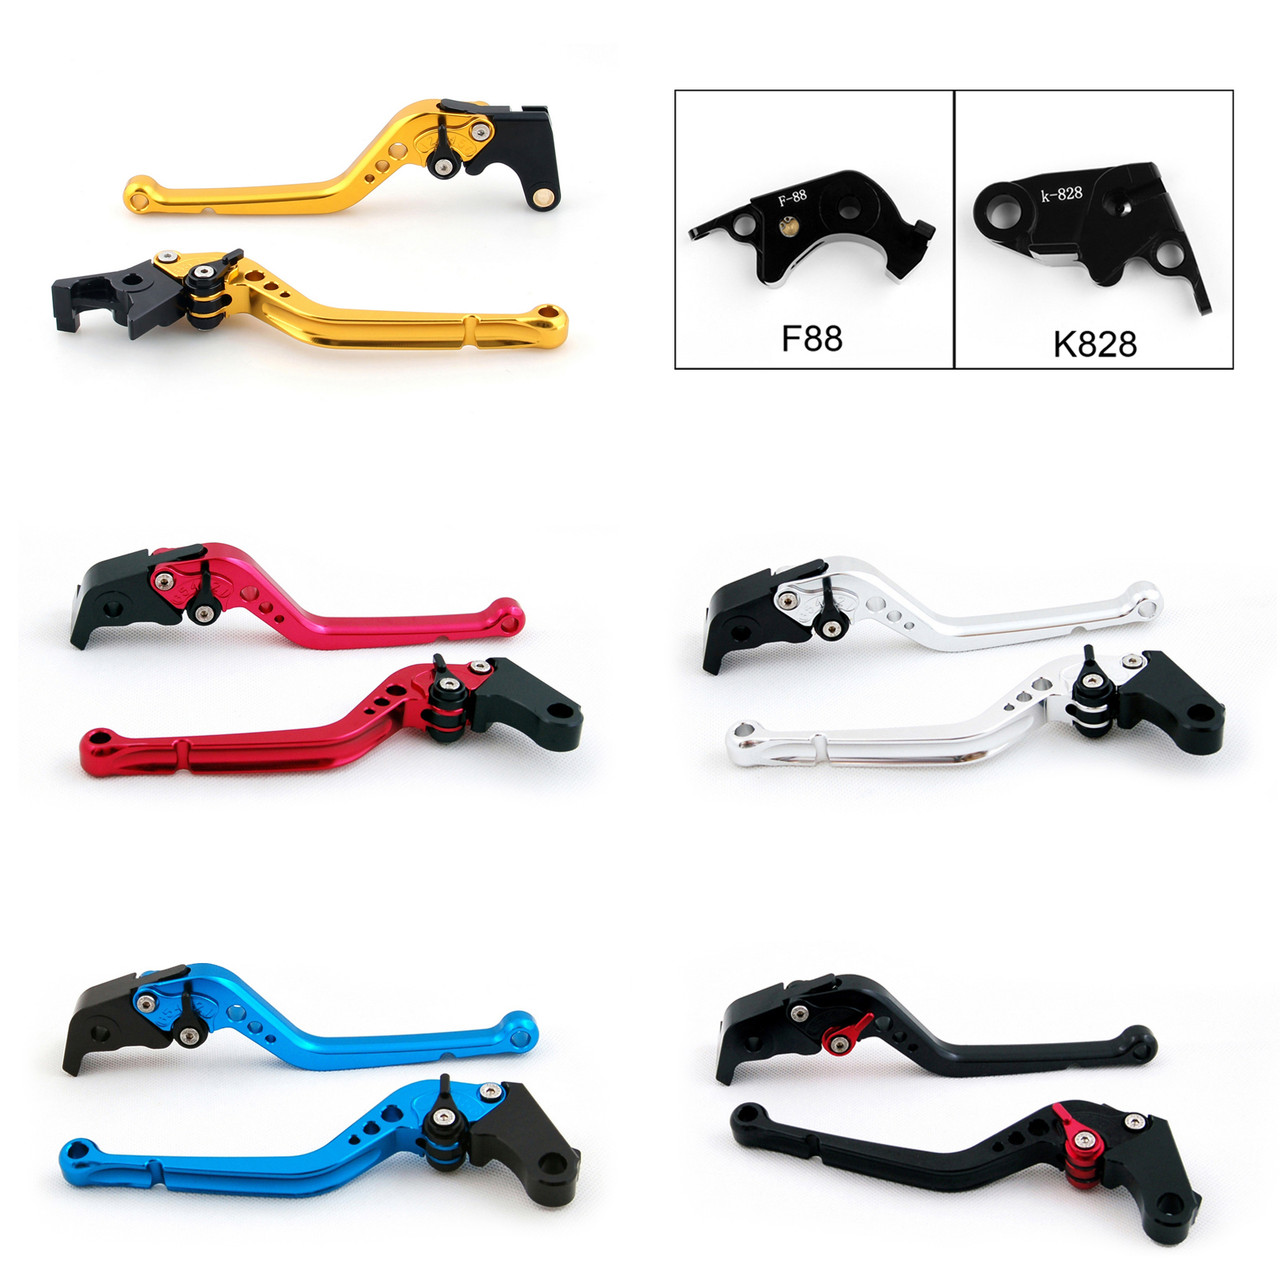 Standard Staff Length Adjustable Brake Clutch Levers Kawasaki Z1000SX NINJA 1000 Z1000SX-Tourer 2011-2016 (F-88/K-828)